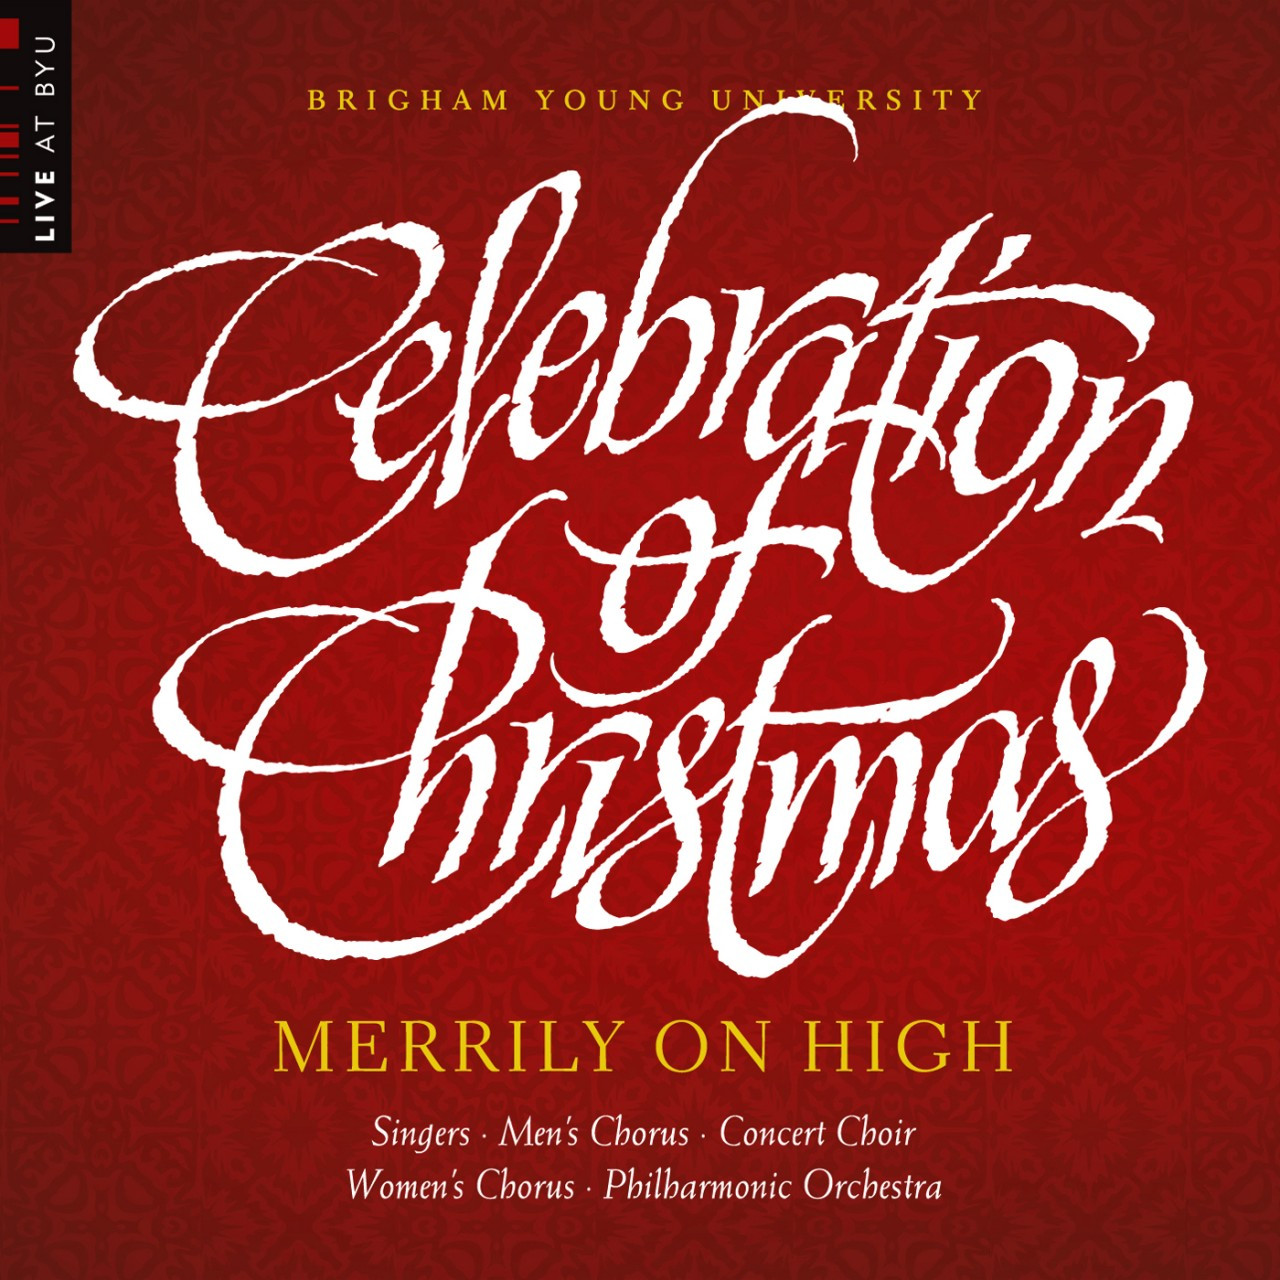 Orchestra christmas music 3 hours of christmas music traditional